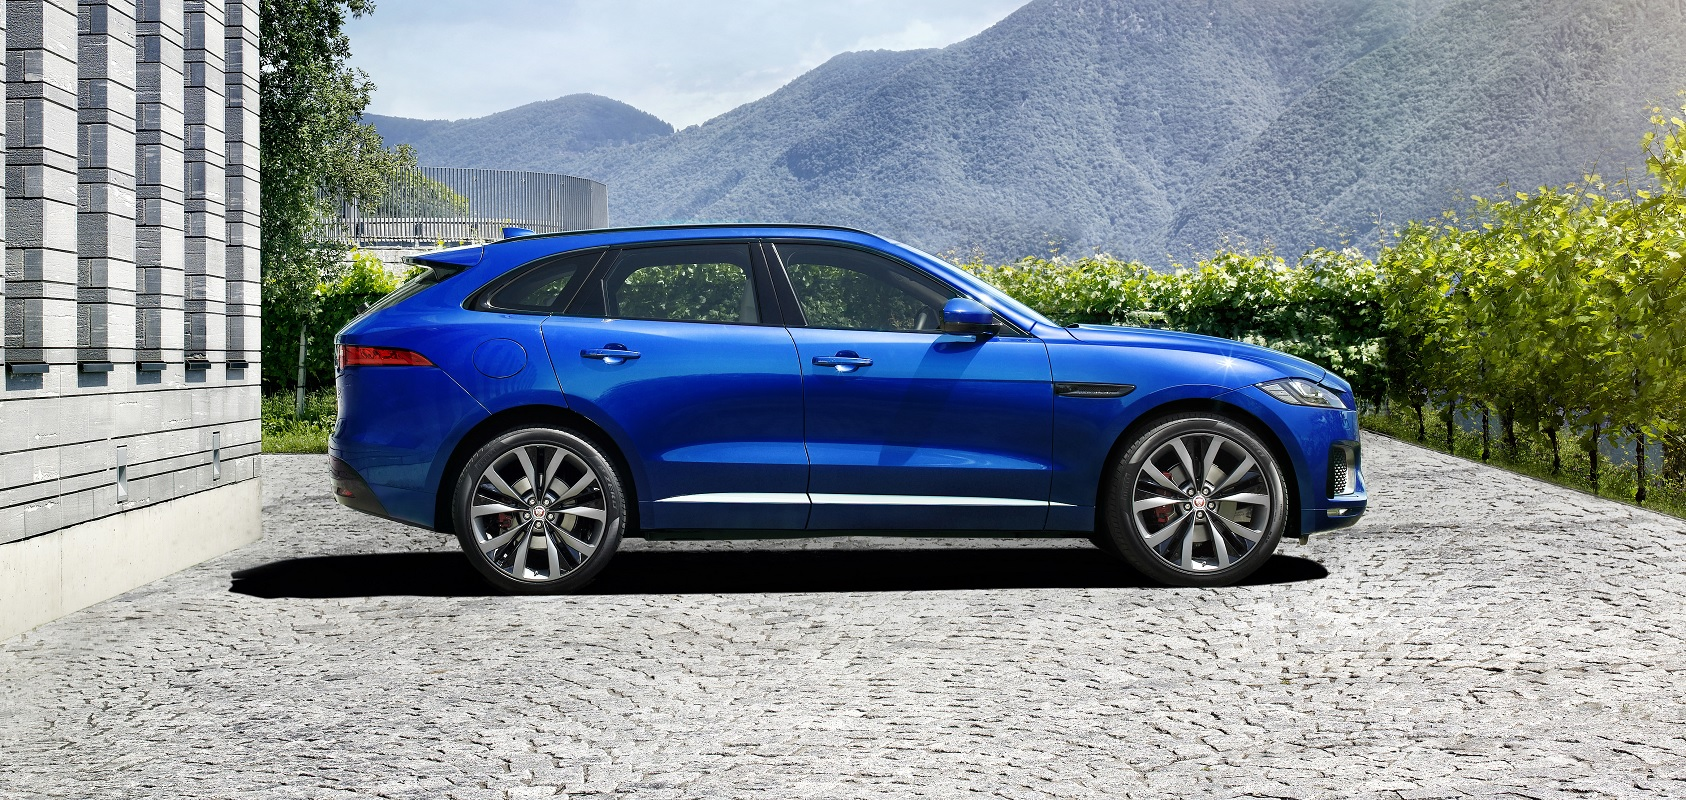 Jaguar F Pace Sizes And Dimensions Guide Carwow